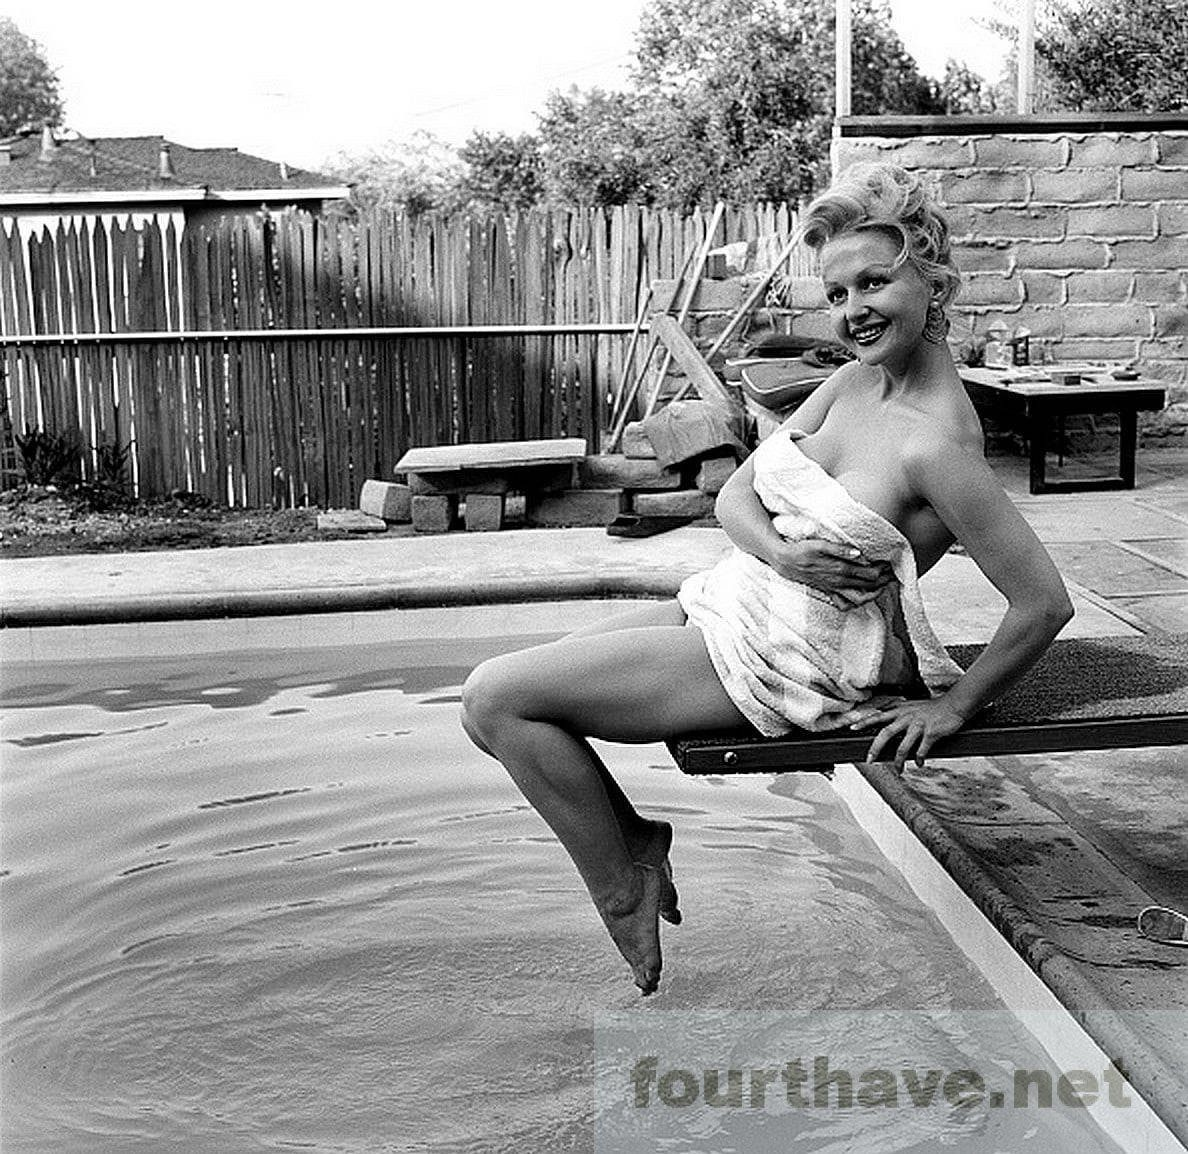 Greta Thyssen by the pool without a swim suit